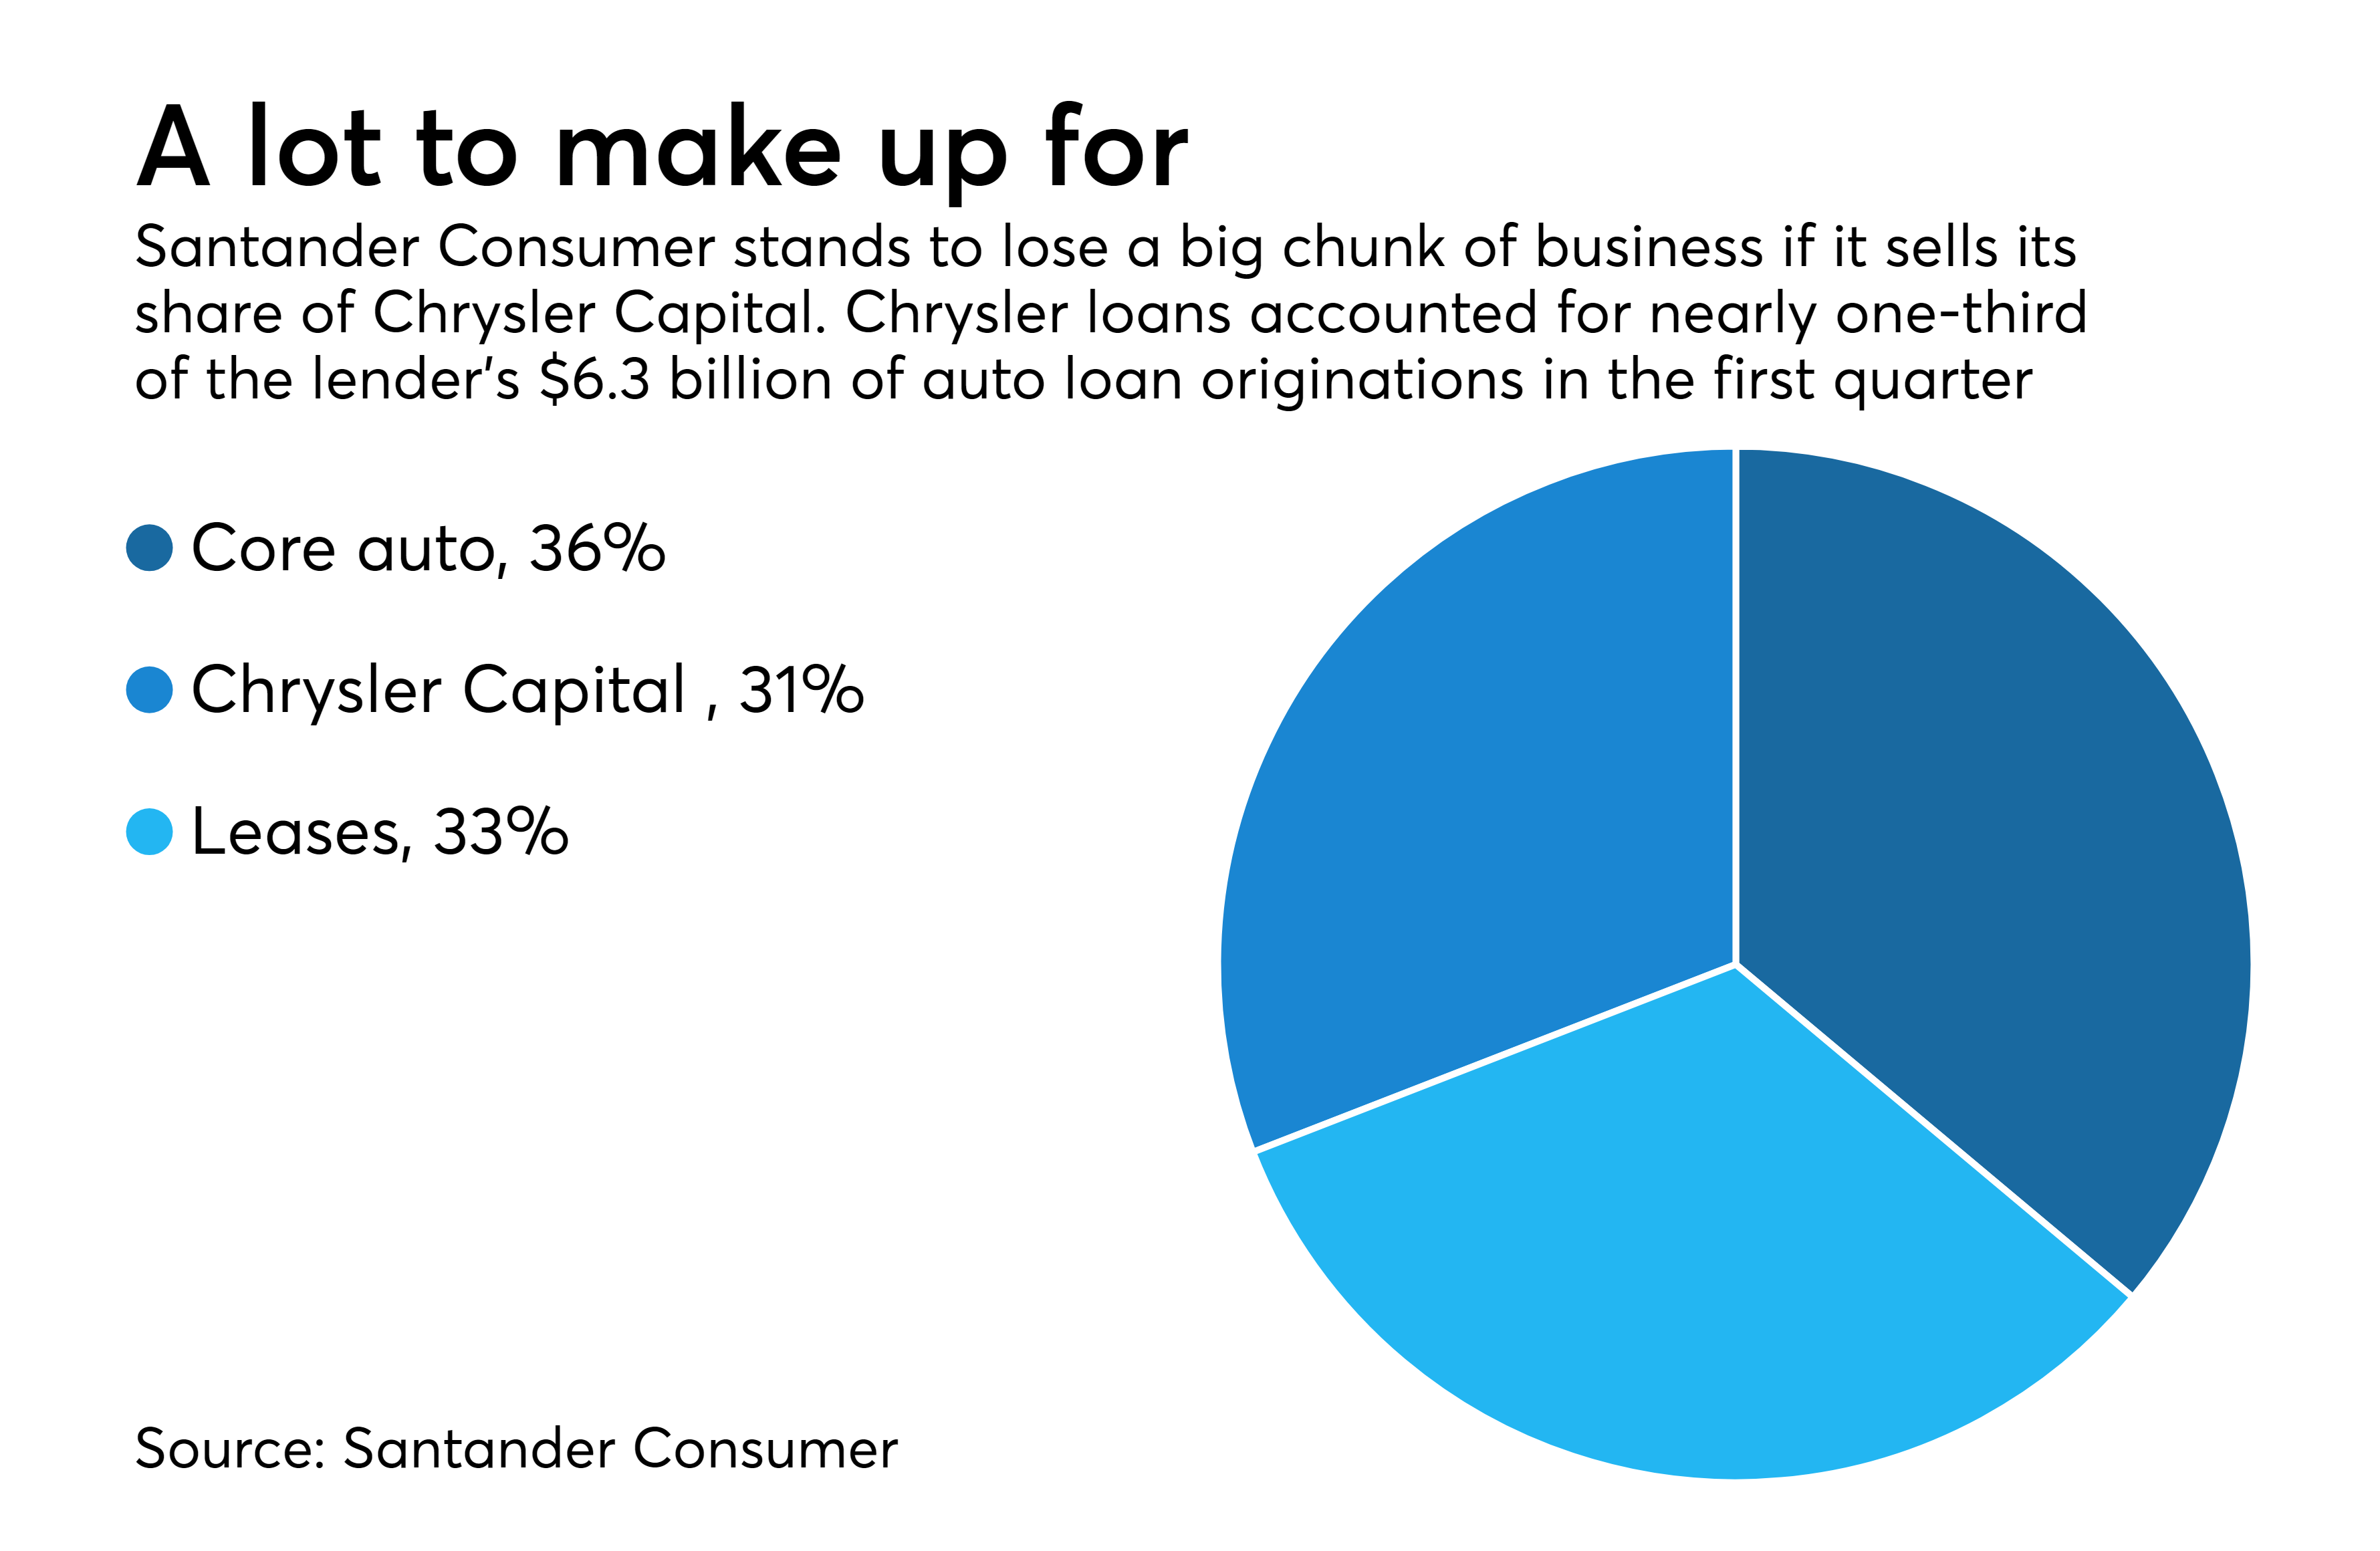 Losing Fiat Chrysler would threaten Santander Consumer s independence